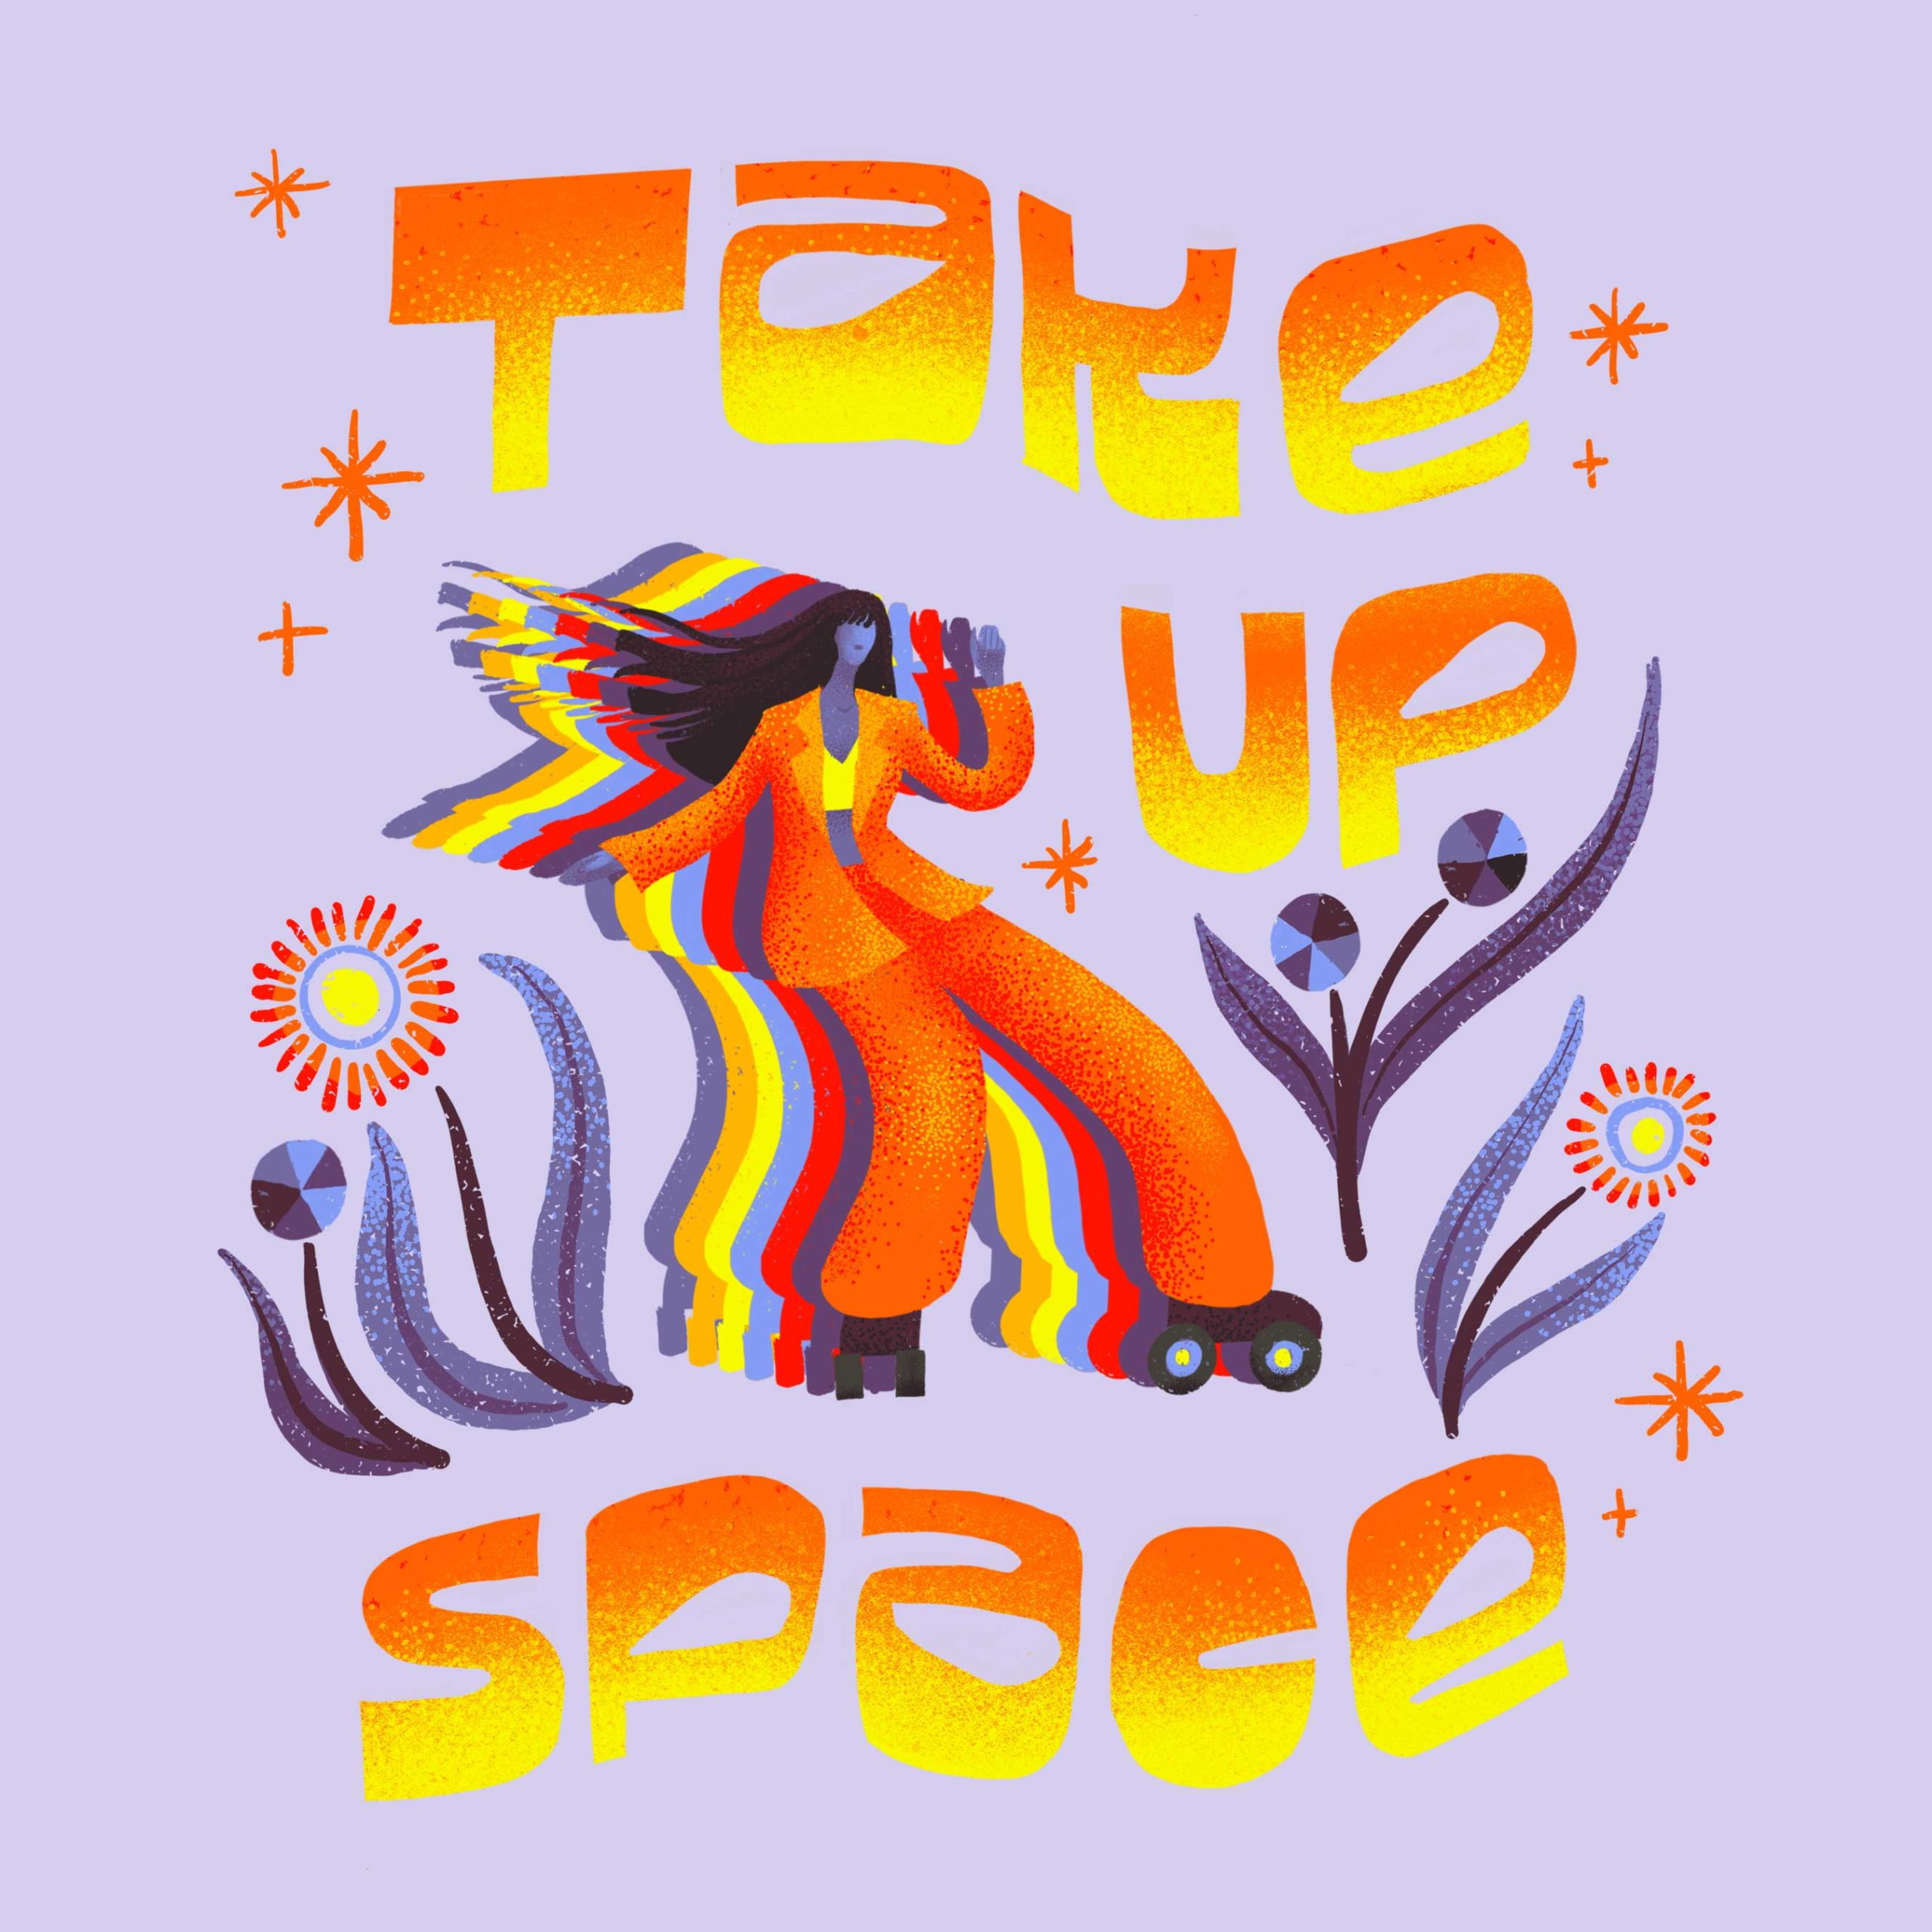 Take Up Space - AR Artwork by Dunaway Smith